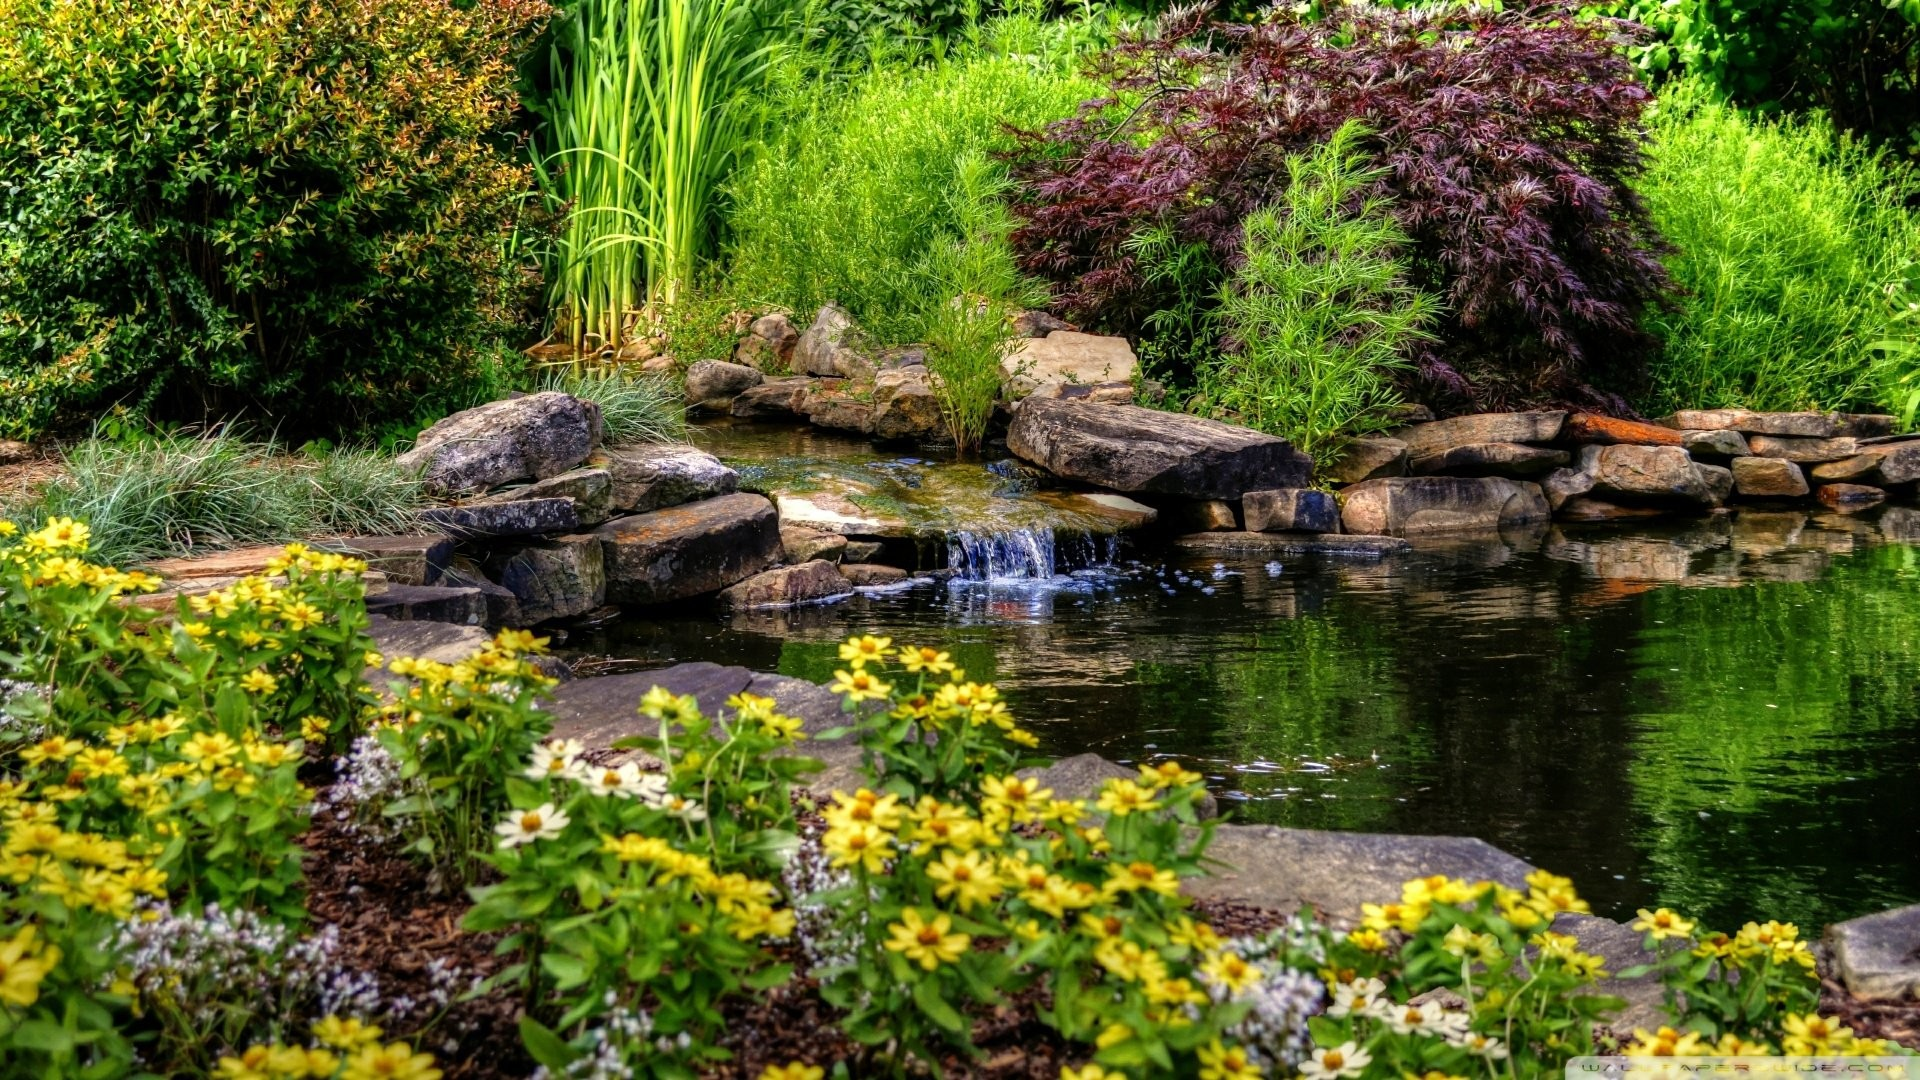 1920x1080 Small pond with flowers-wallpaper- wallpaper |  | 825177  | WallpaperUP